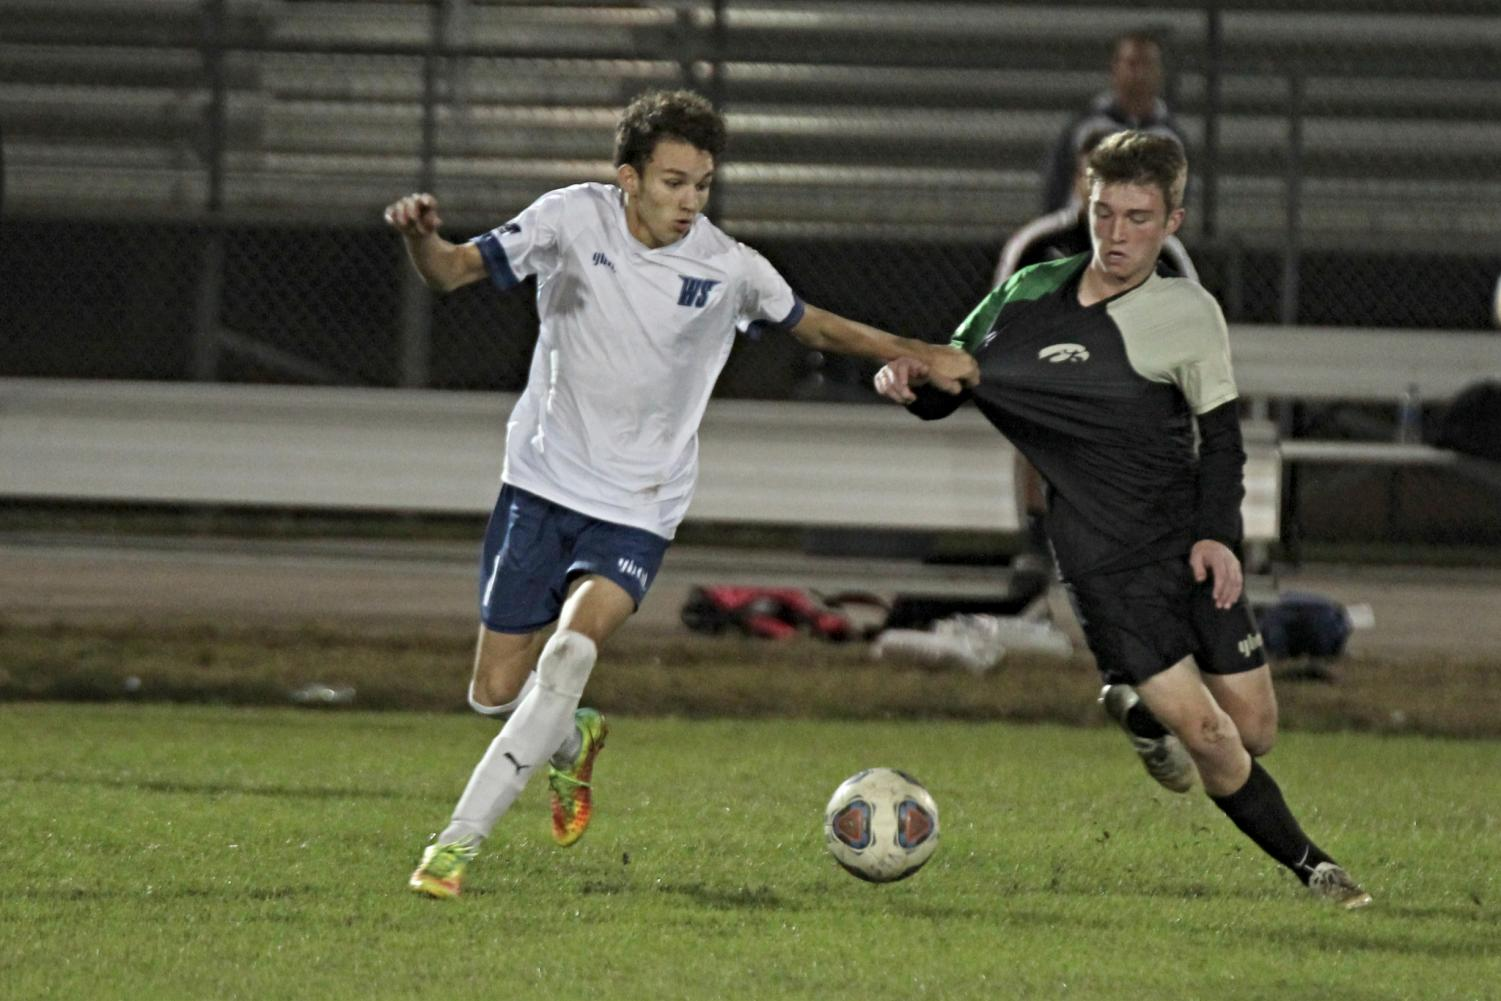 Senior midfielder Cameron Yeutter fights for the ball against a Viera opponent.